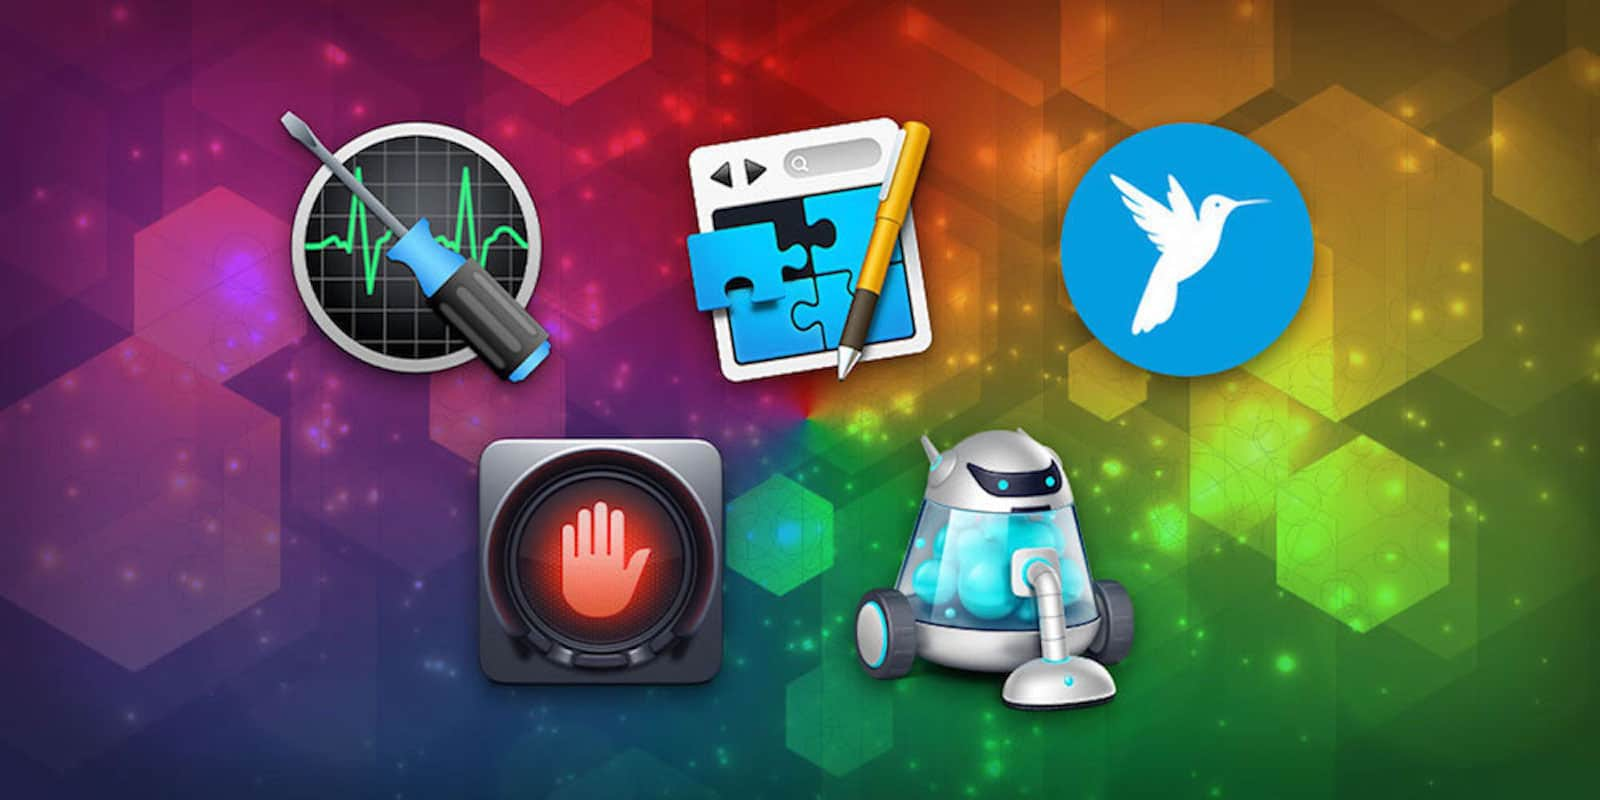 Name your price to instantly improve the productivity and performance of your Mac.